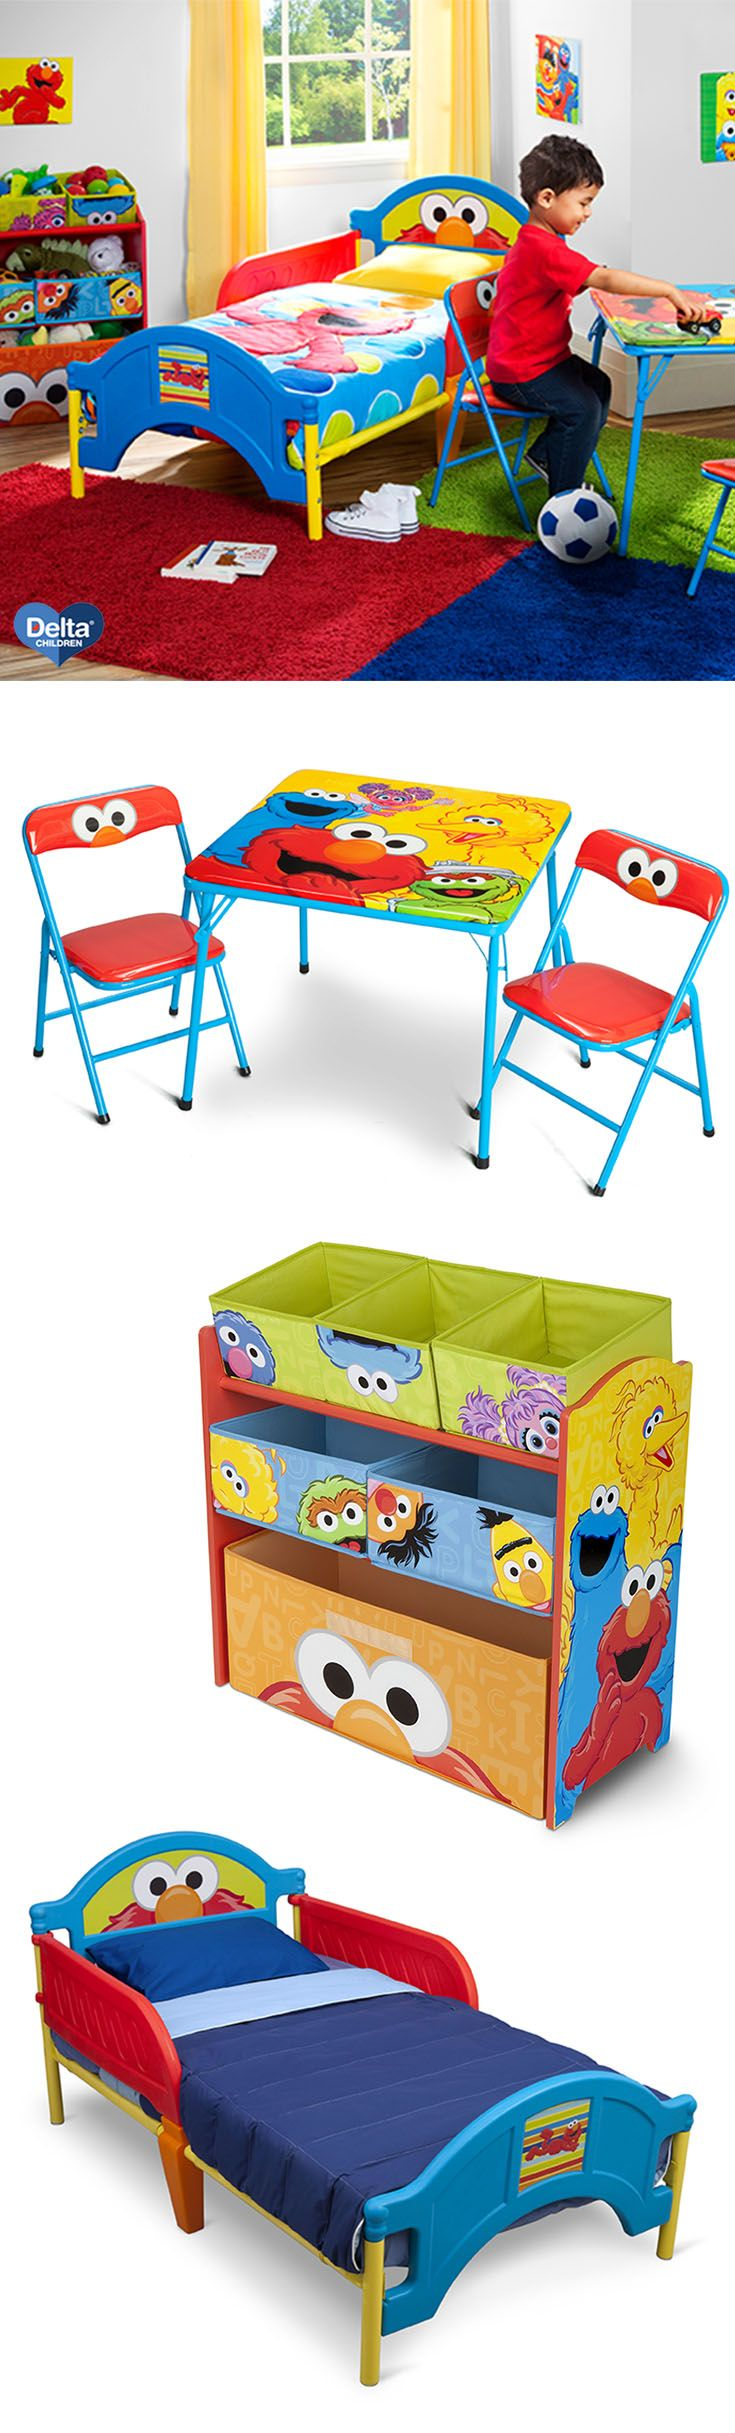 Bring Sesame Street To Your Toddleru0027s Bedroom With This Amazing Collection  From Delta Children, Including Elmo, Cookie Monster, Big Bird, Abby And  More Fun ...